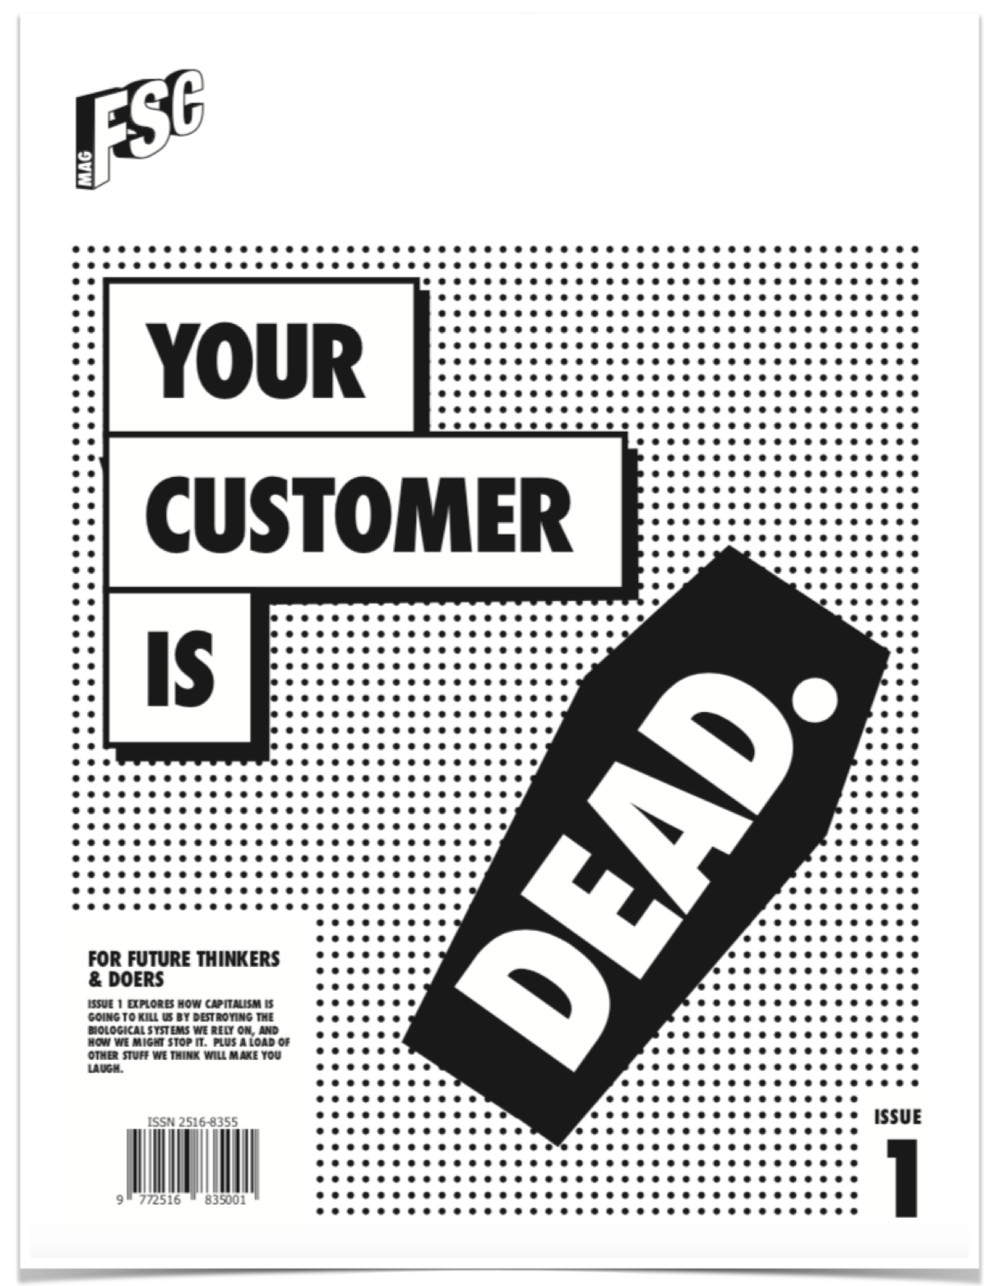 THE FSC MAG - Billed as the punkish love-child of Private Eye and HBR - the FSC Mag is an alternative to the rather corporate, stale and pompous creative industry mags already out there with a heady mix of in-depth future thinking, cynical piss-taking and original funny stuff that may make you laugh.